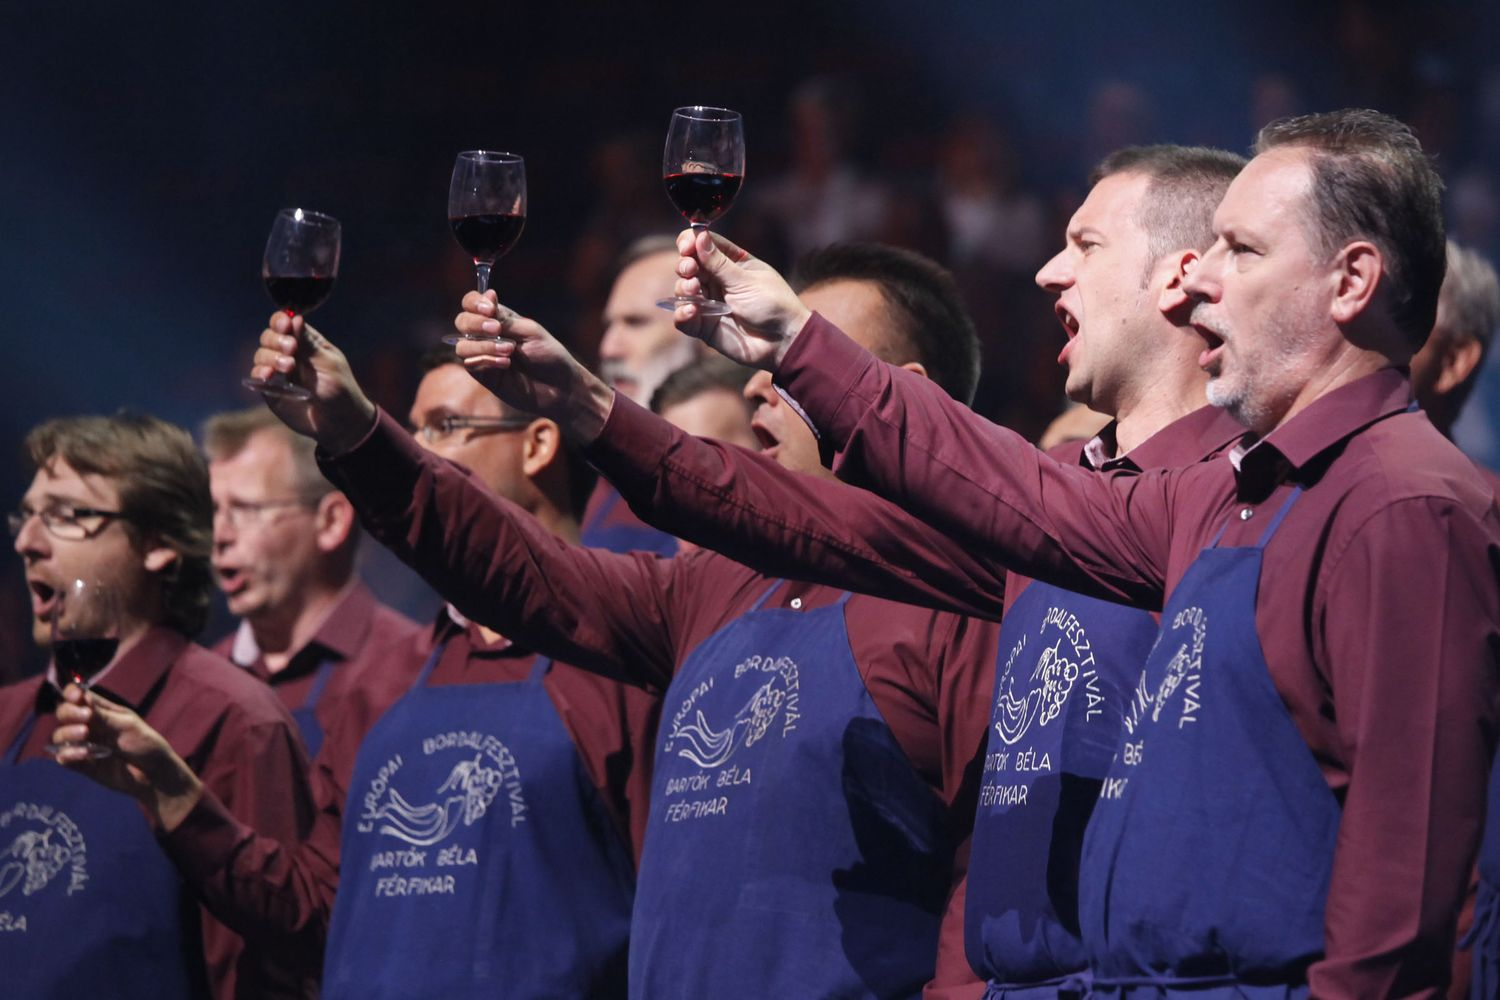 Hungarian male choir performing with wine glasses © Studi43